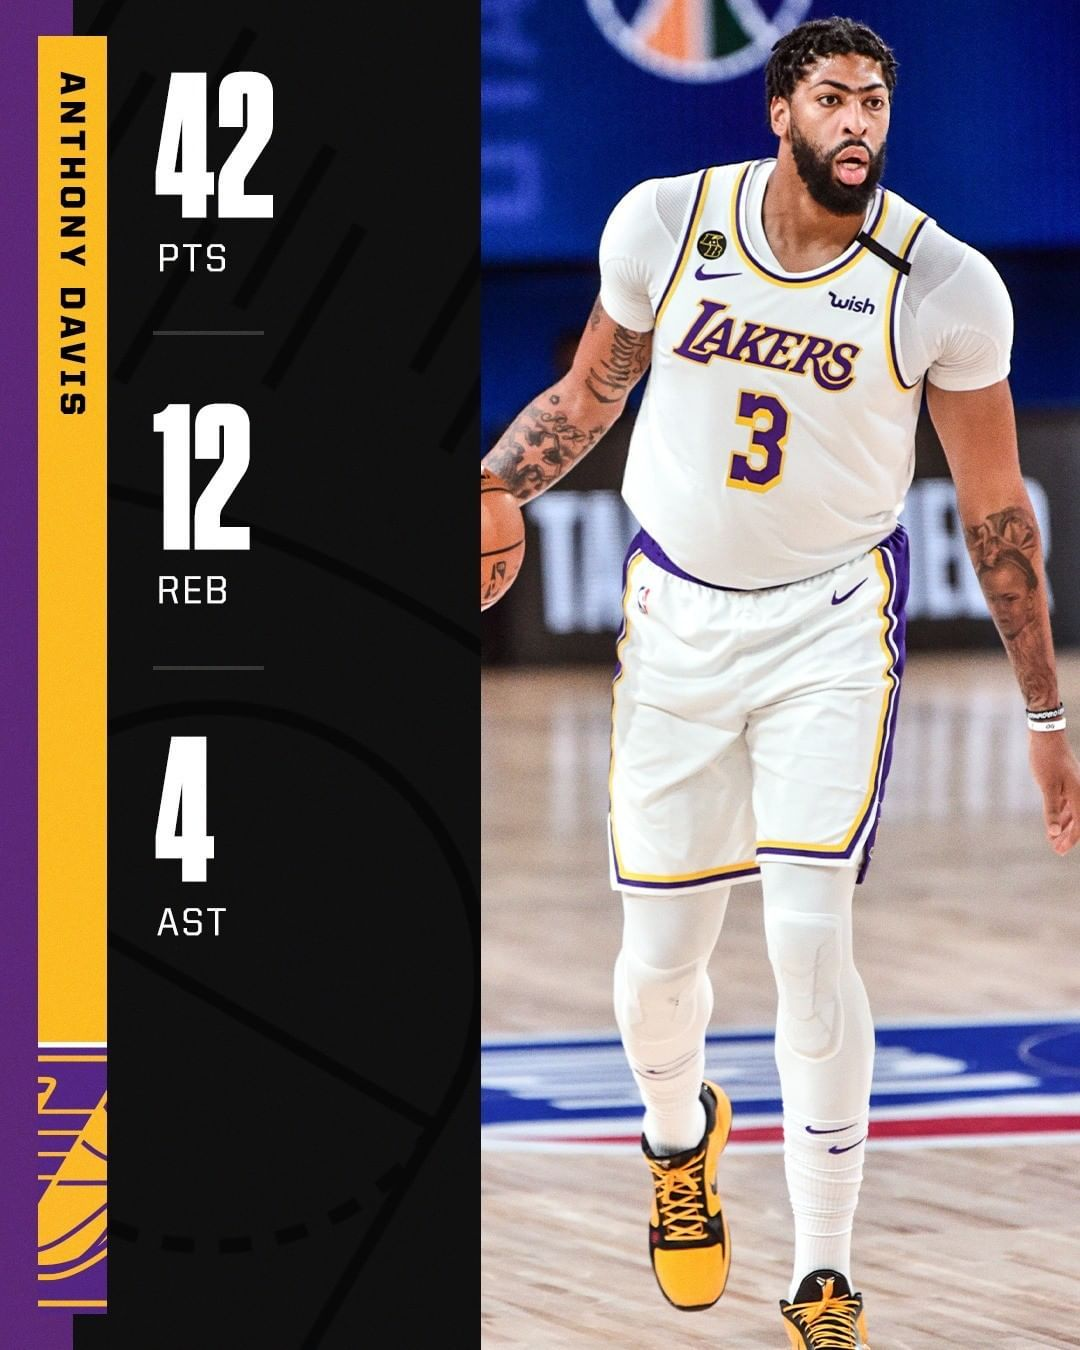 Nba On Espn On Instagram Antdavis23 Went Off Tonight For The Lakers In Their Win Vs The Jazz In 2020 Anthony Davis Sports Nba